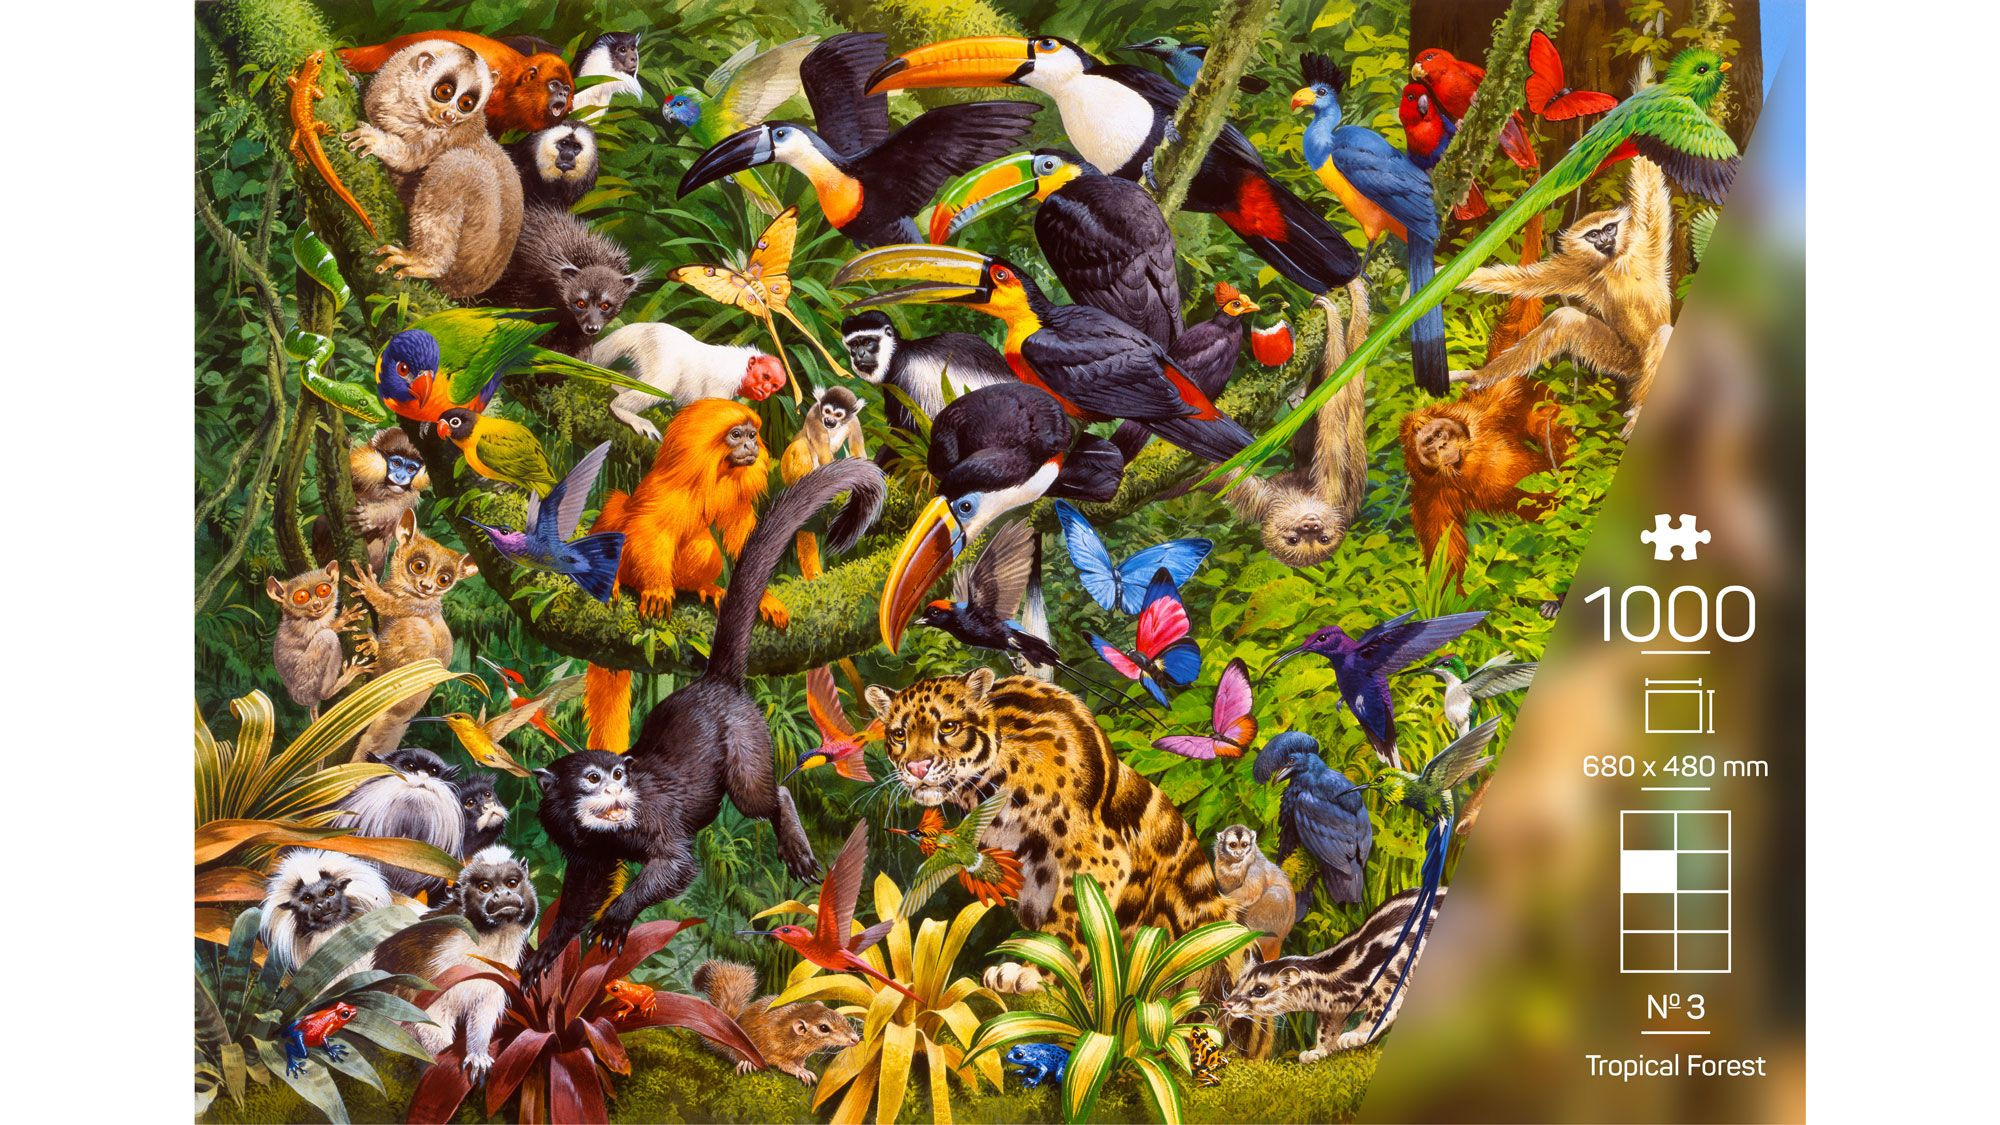 The Wildlife Collection – Nr. 3 Tropical Forest